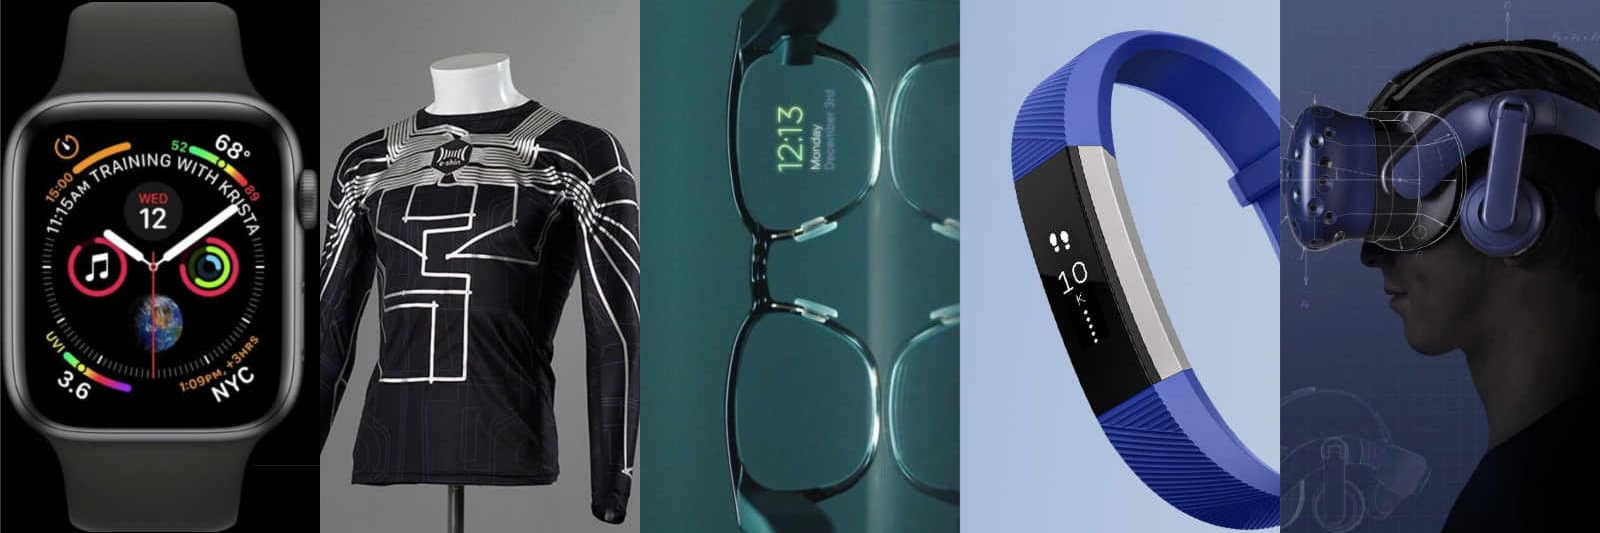 Wearable Technology Banner